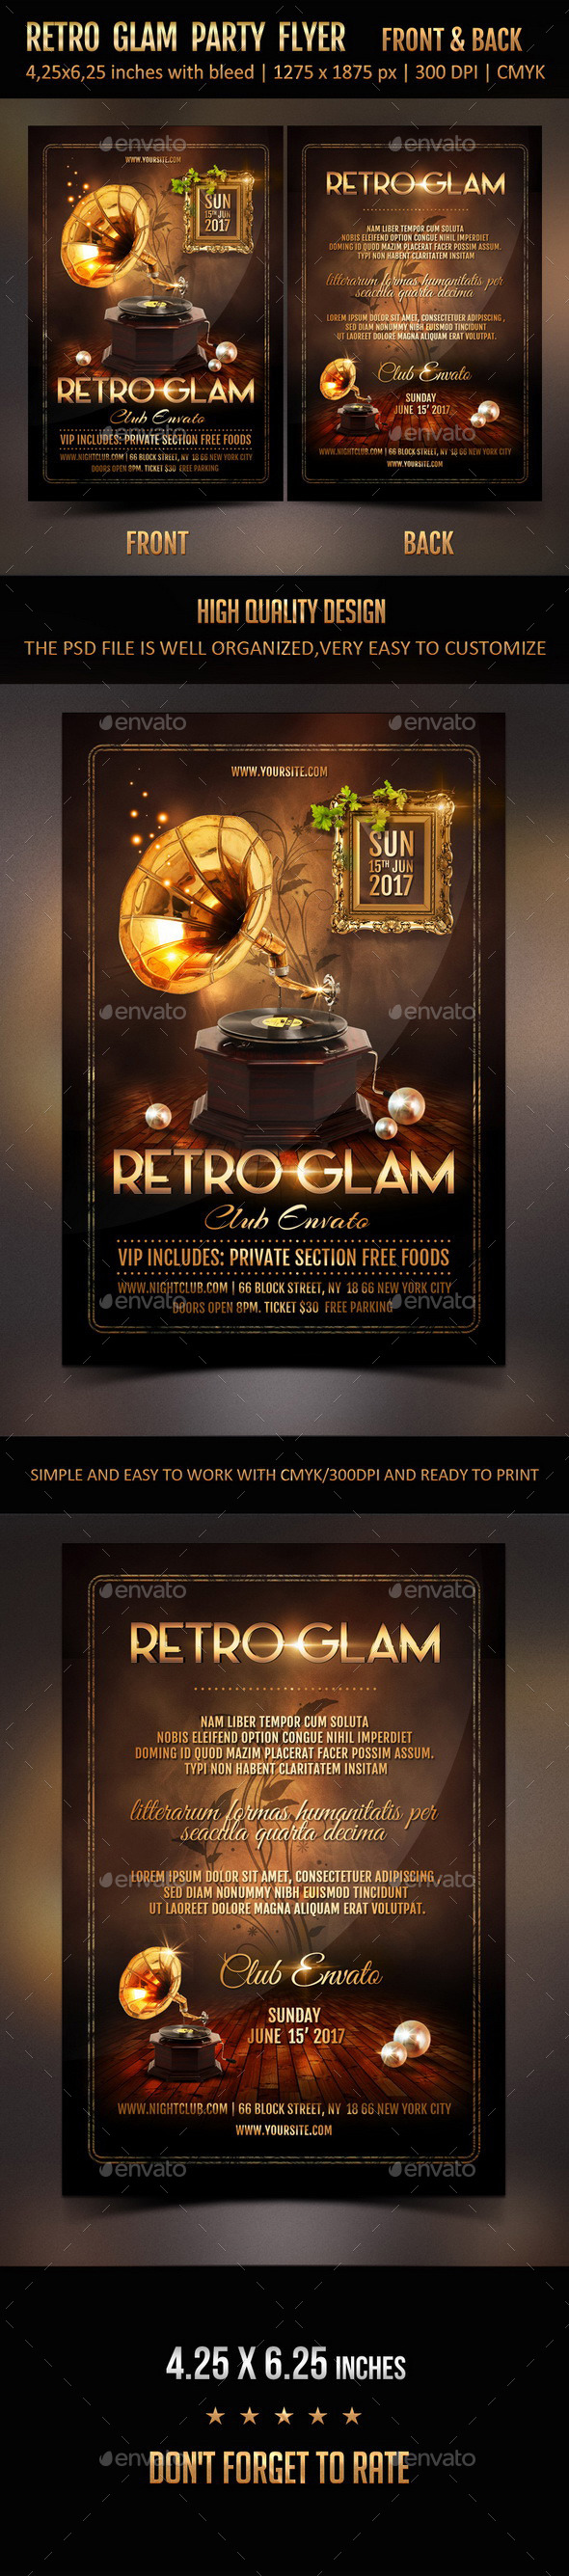 GraphicRiver Retro Glam Party Flyer 11877900